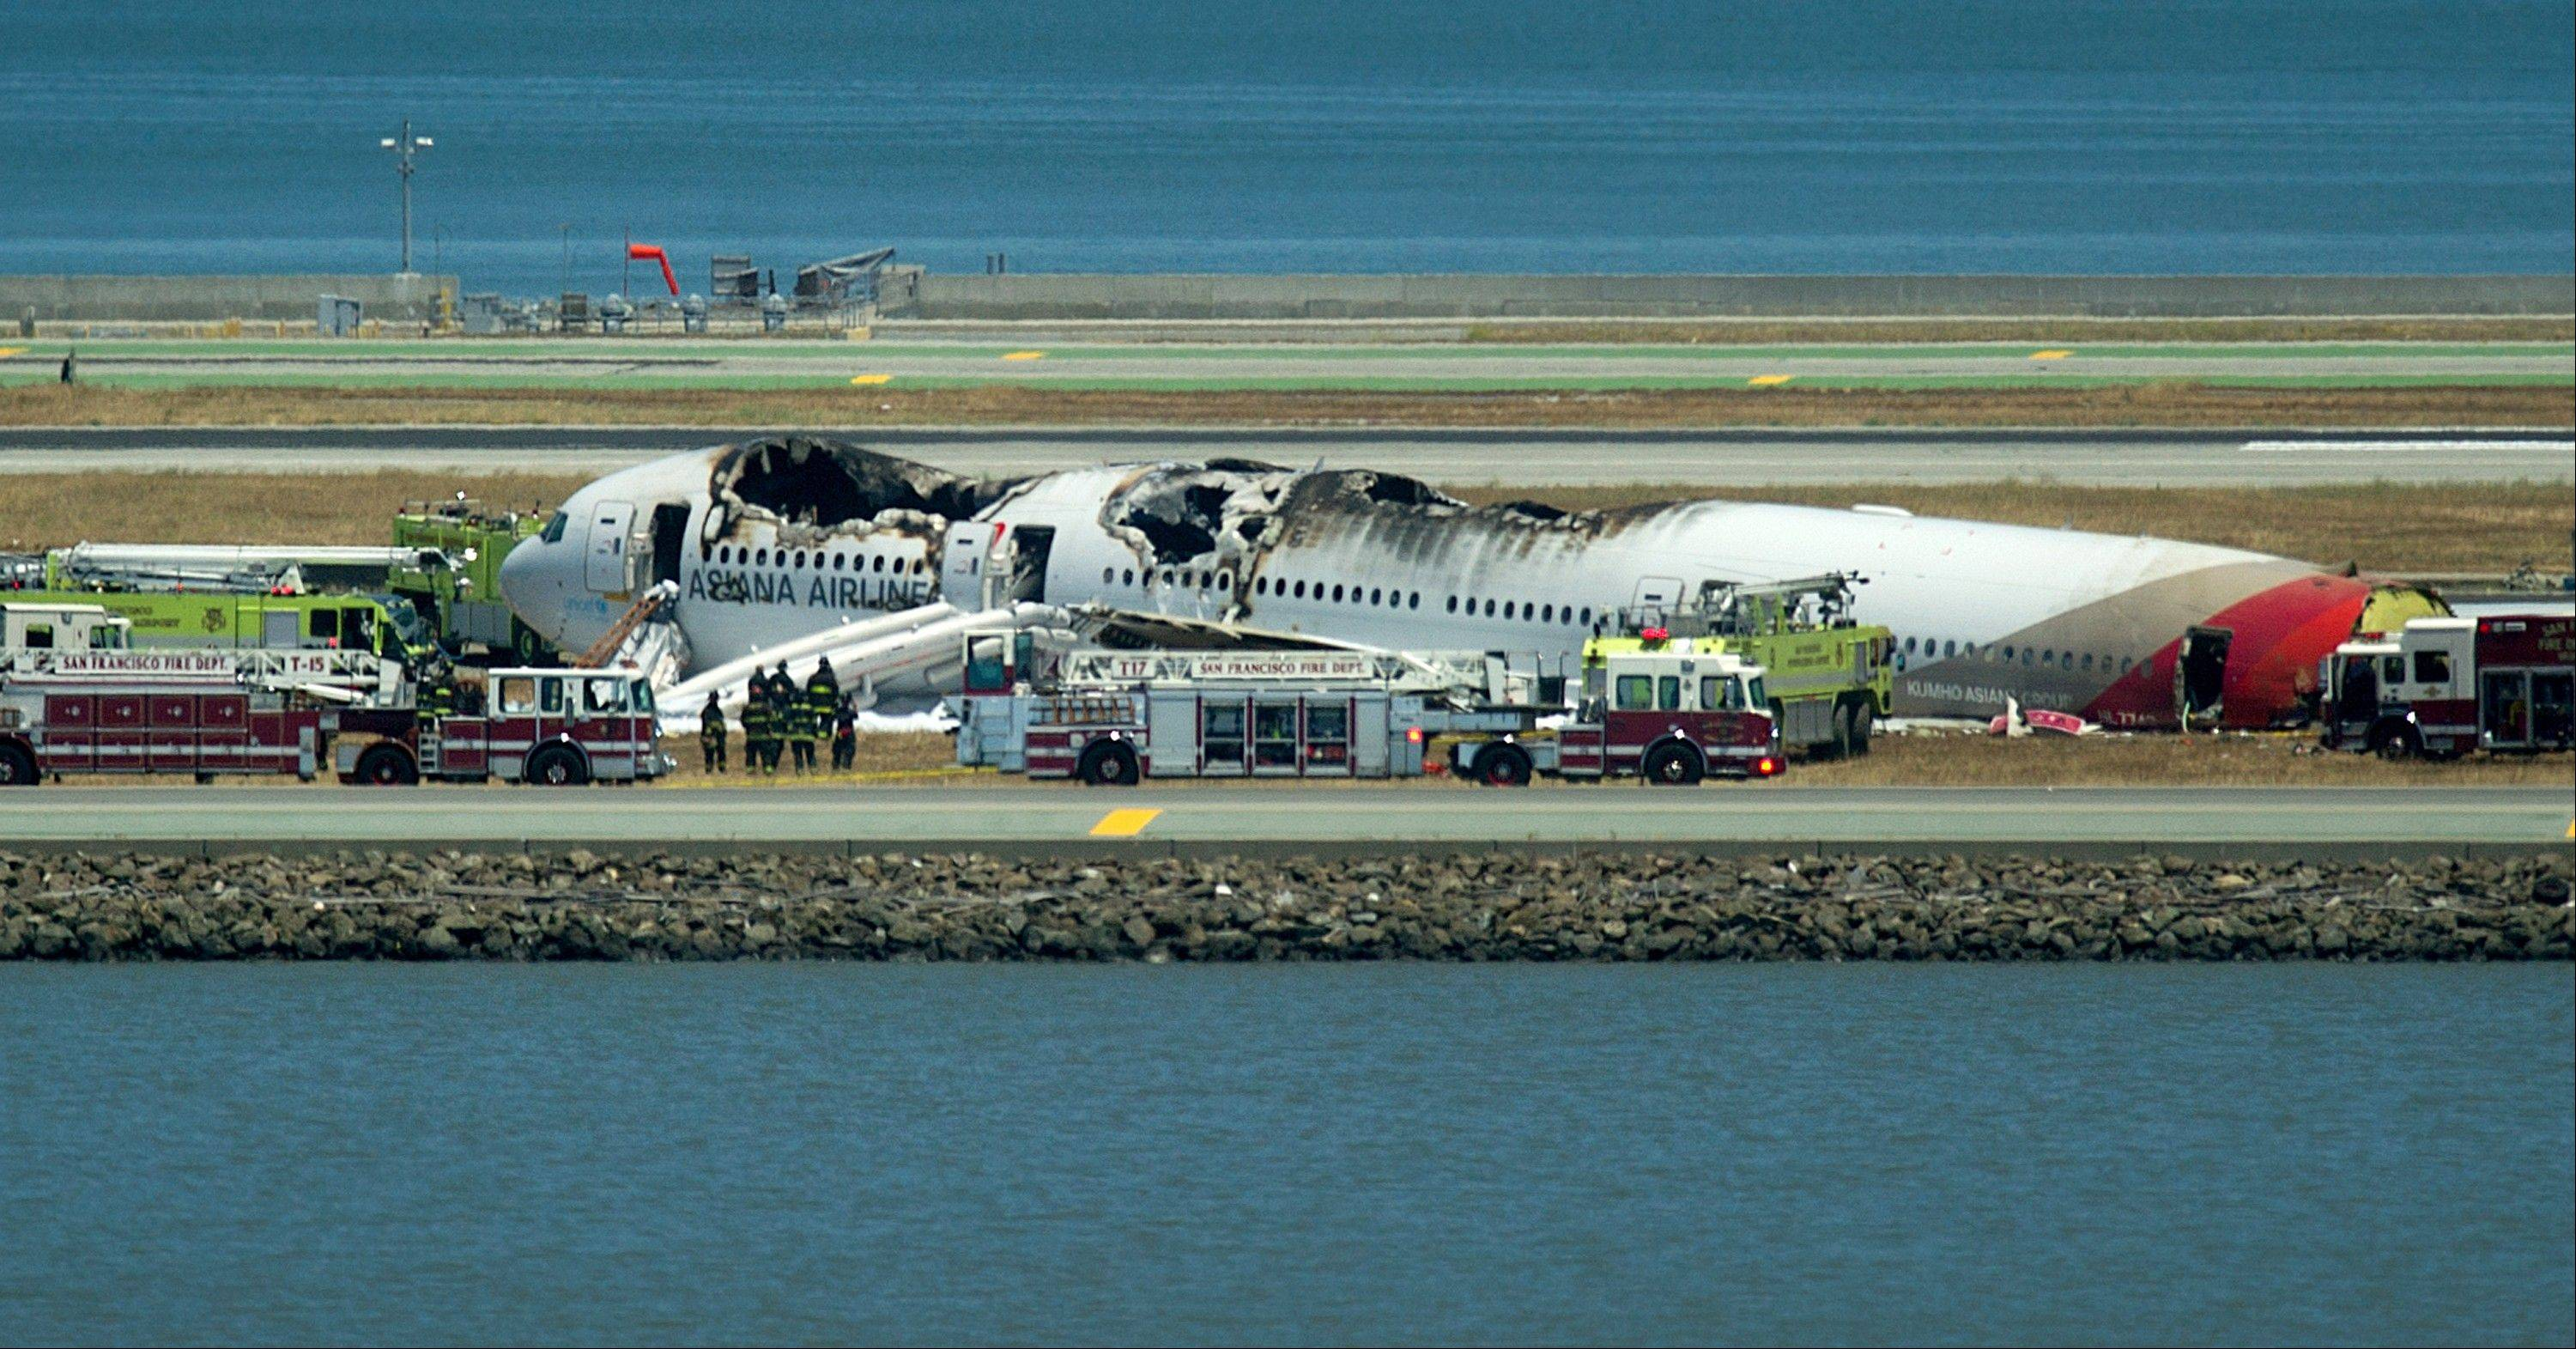 A fire truck sprays water on Asiana Flight 214 after it crashed at San Francisco International Airport on Saturday, July 6, 2013, in San Francisco.